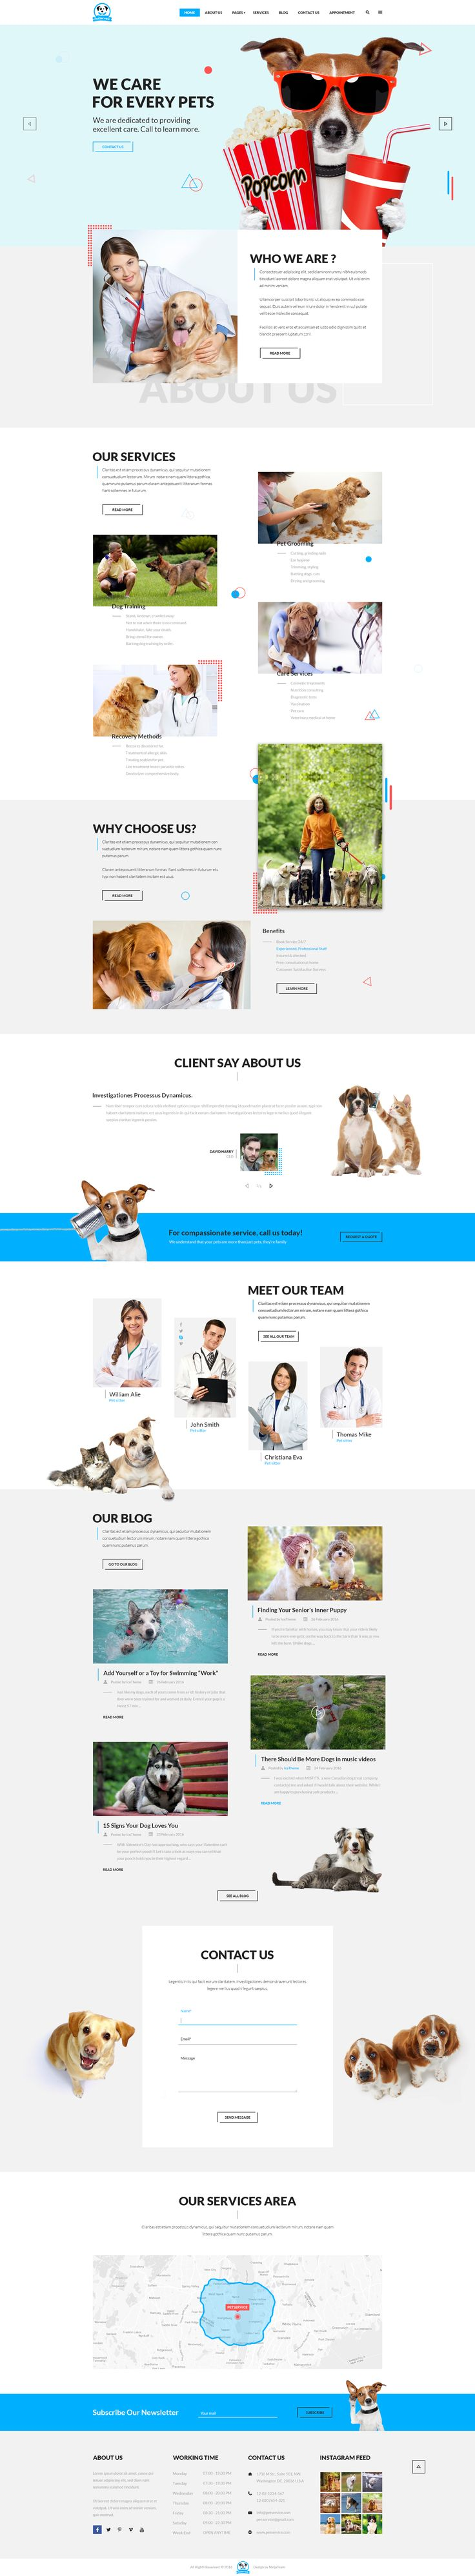 Pet Service - A Pet Services PSD Template • Download ➝ https://themeforest.net/item/pet-service-a-pet-services-psd-template/15430137?ref=pxcr